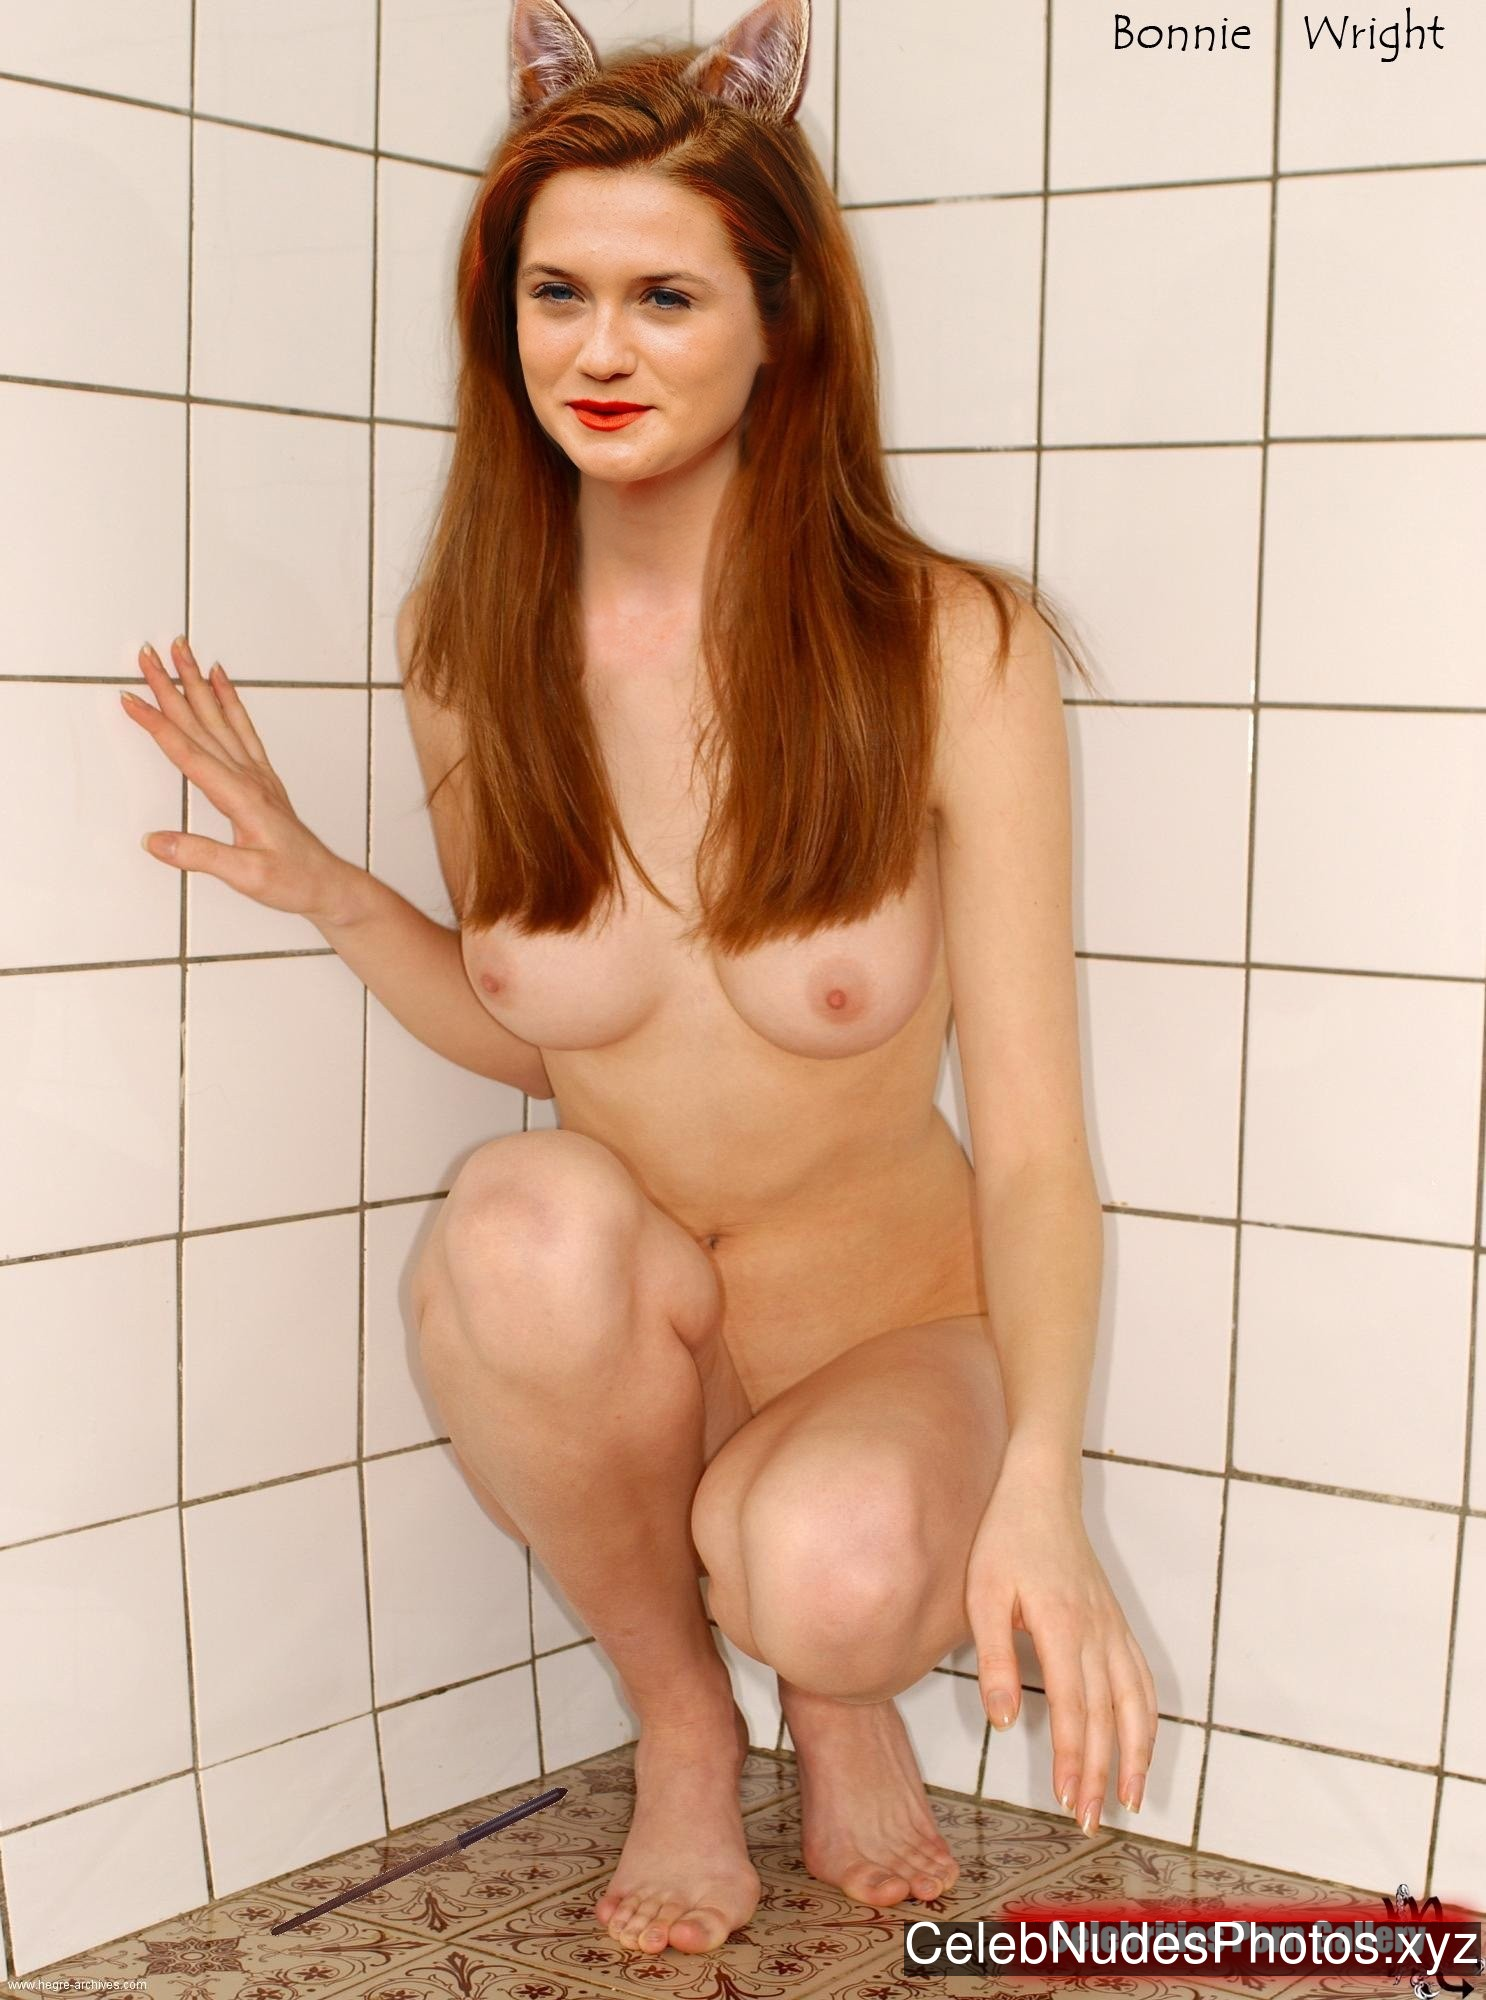 Bonnie Wright Celebrity Leaked Nude Photo sexy 17